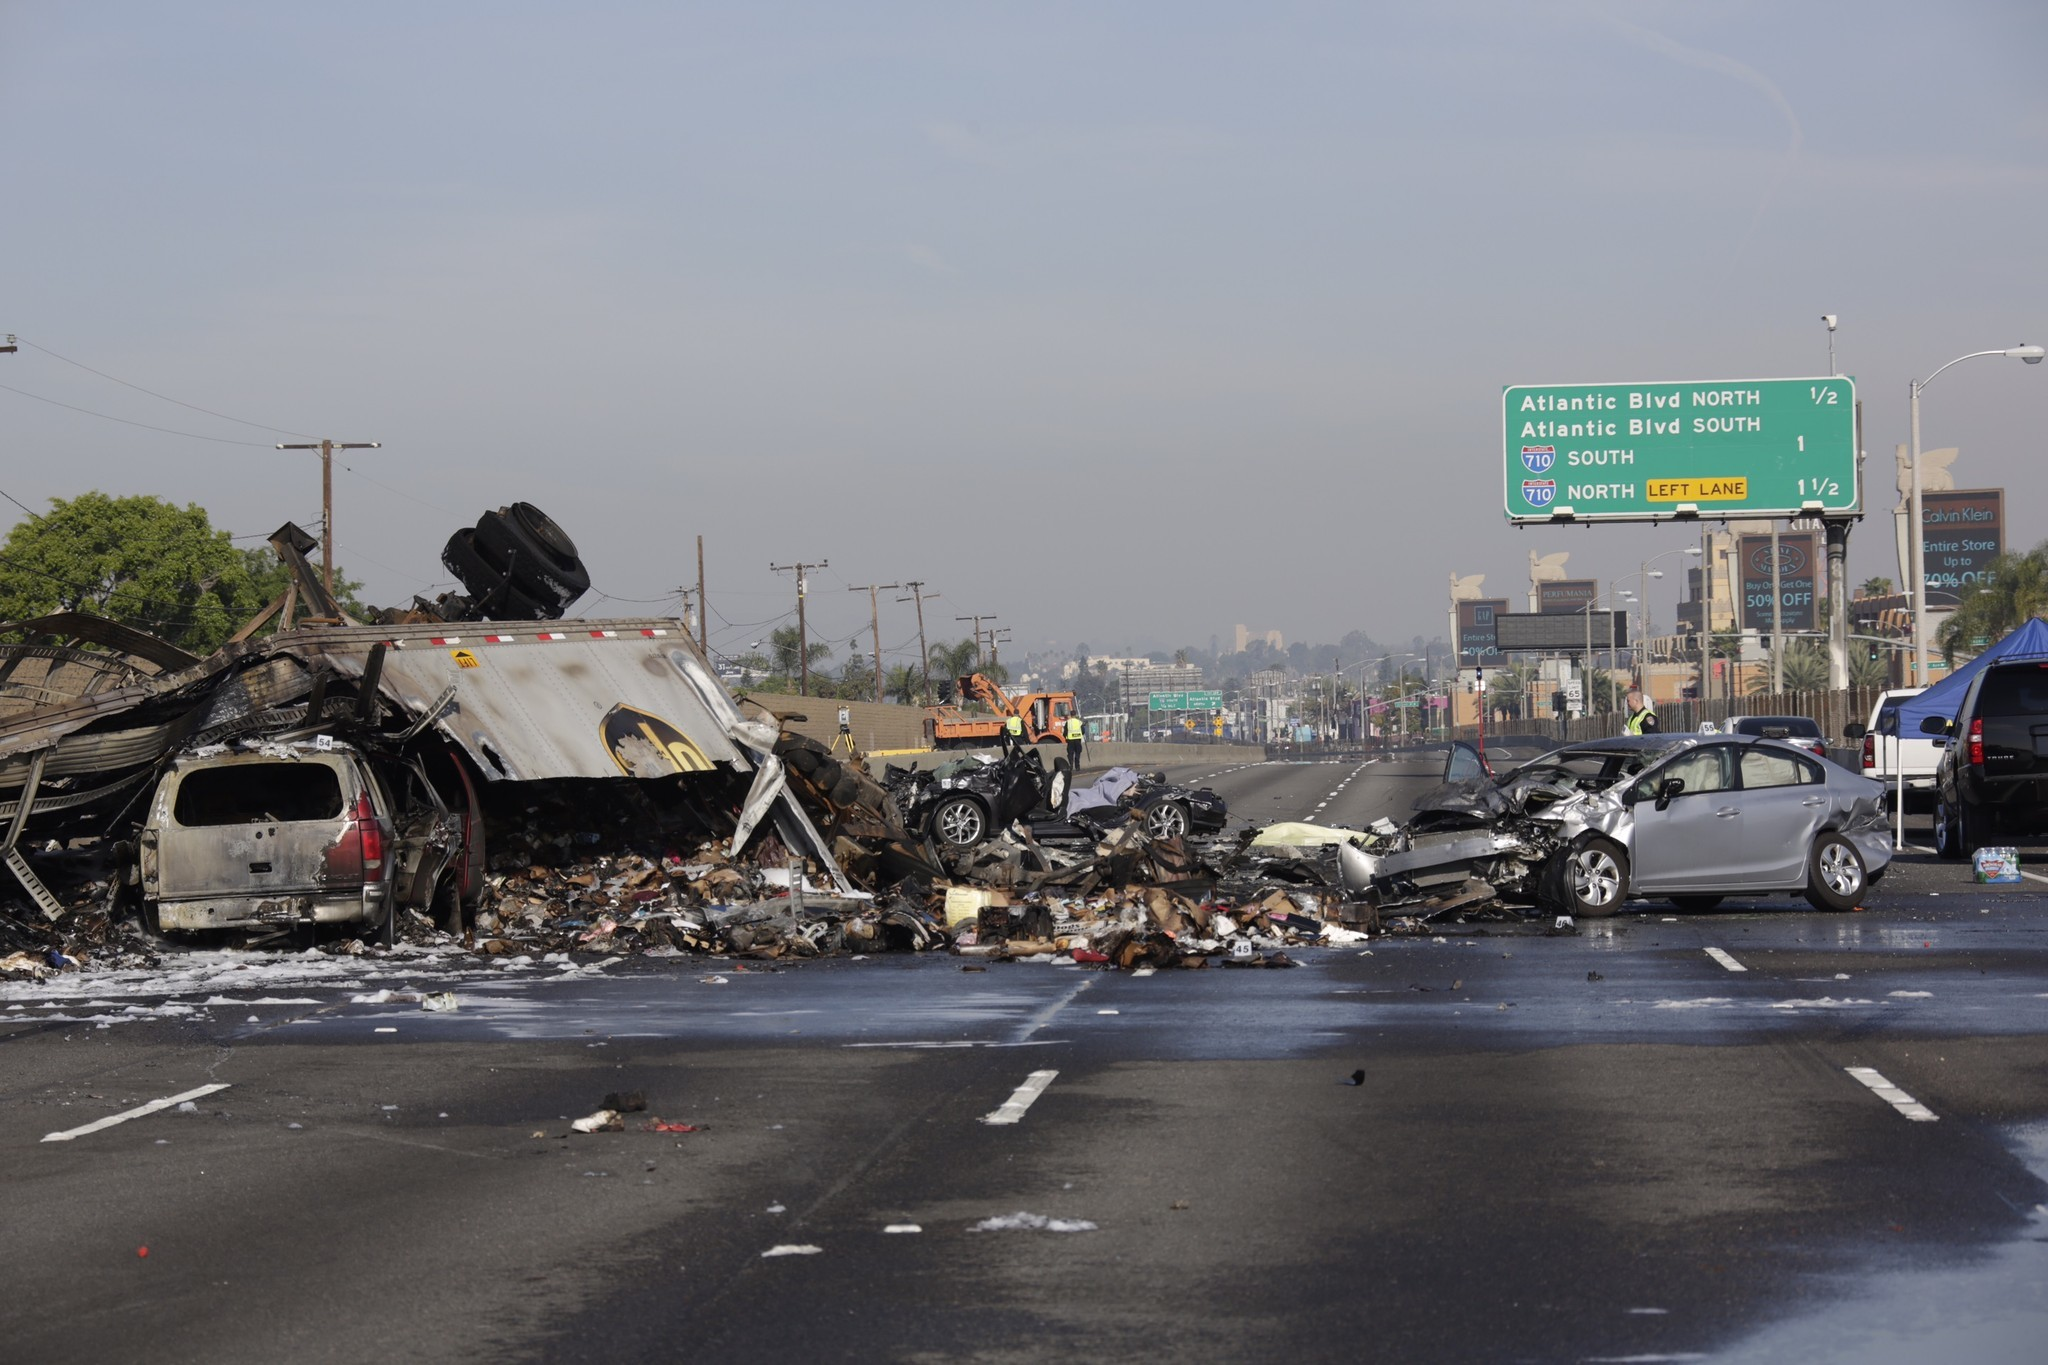 12 in indonesia three times per day google map car got in an accident - Three Dead As Multivehicle Crash Shuts Down 5 Freeway In Commerce La Times